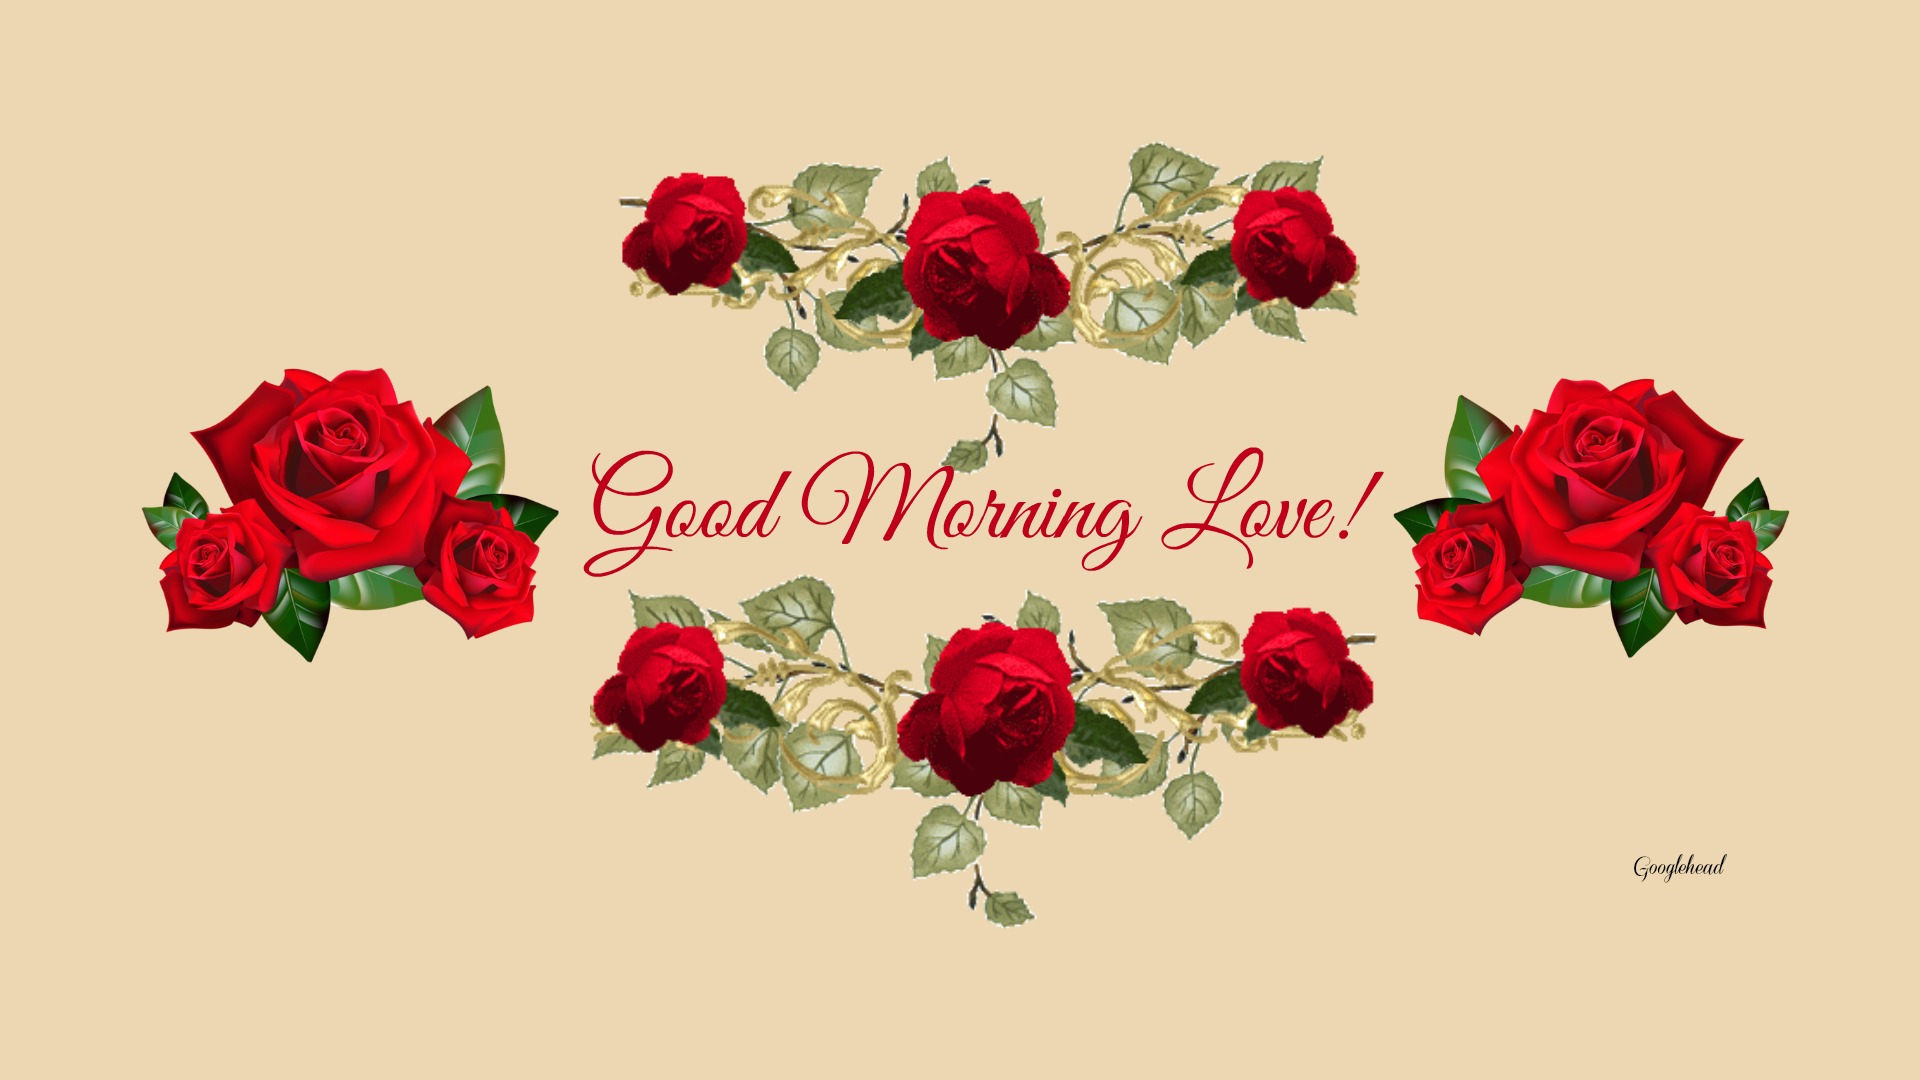 Love Good Morning And Good Night Wallpaper : Good Morning wallpapers, Pictures, Images